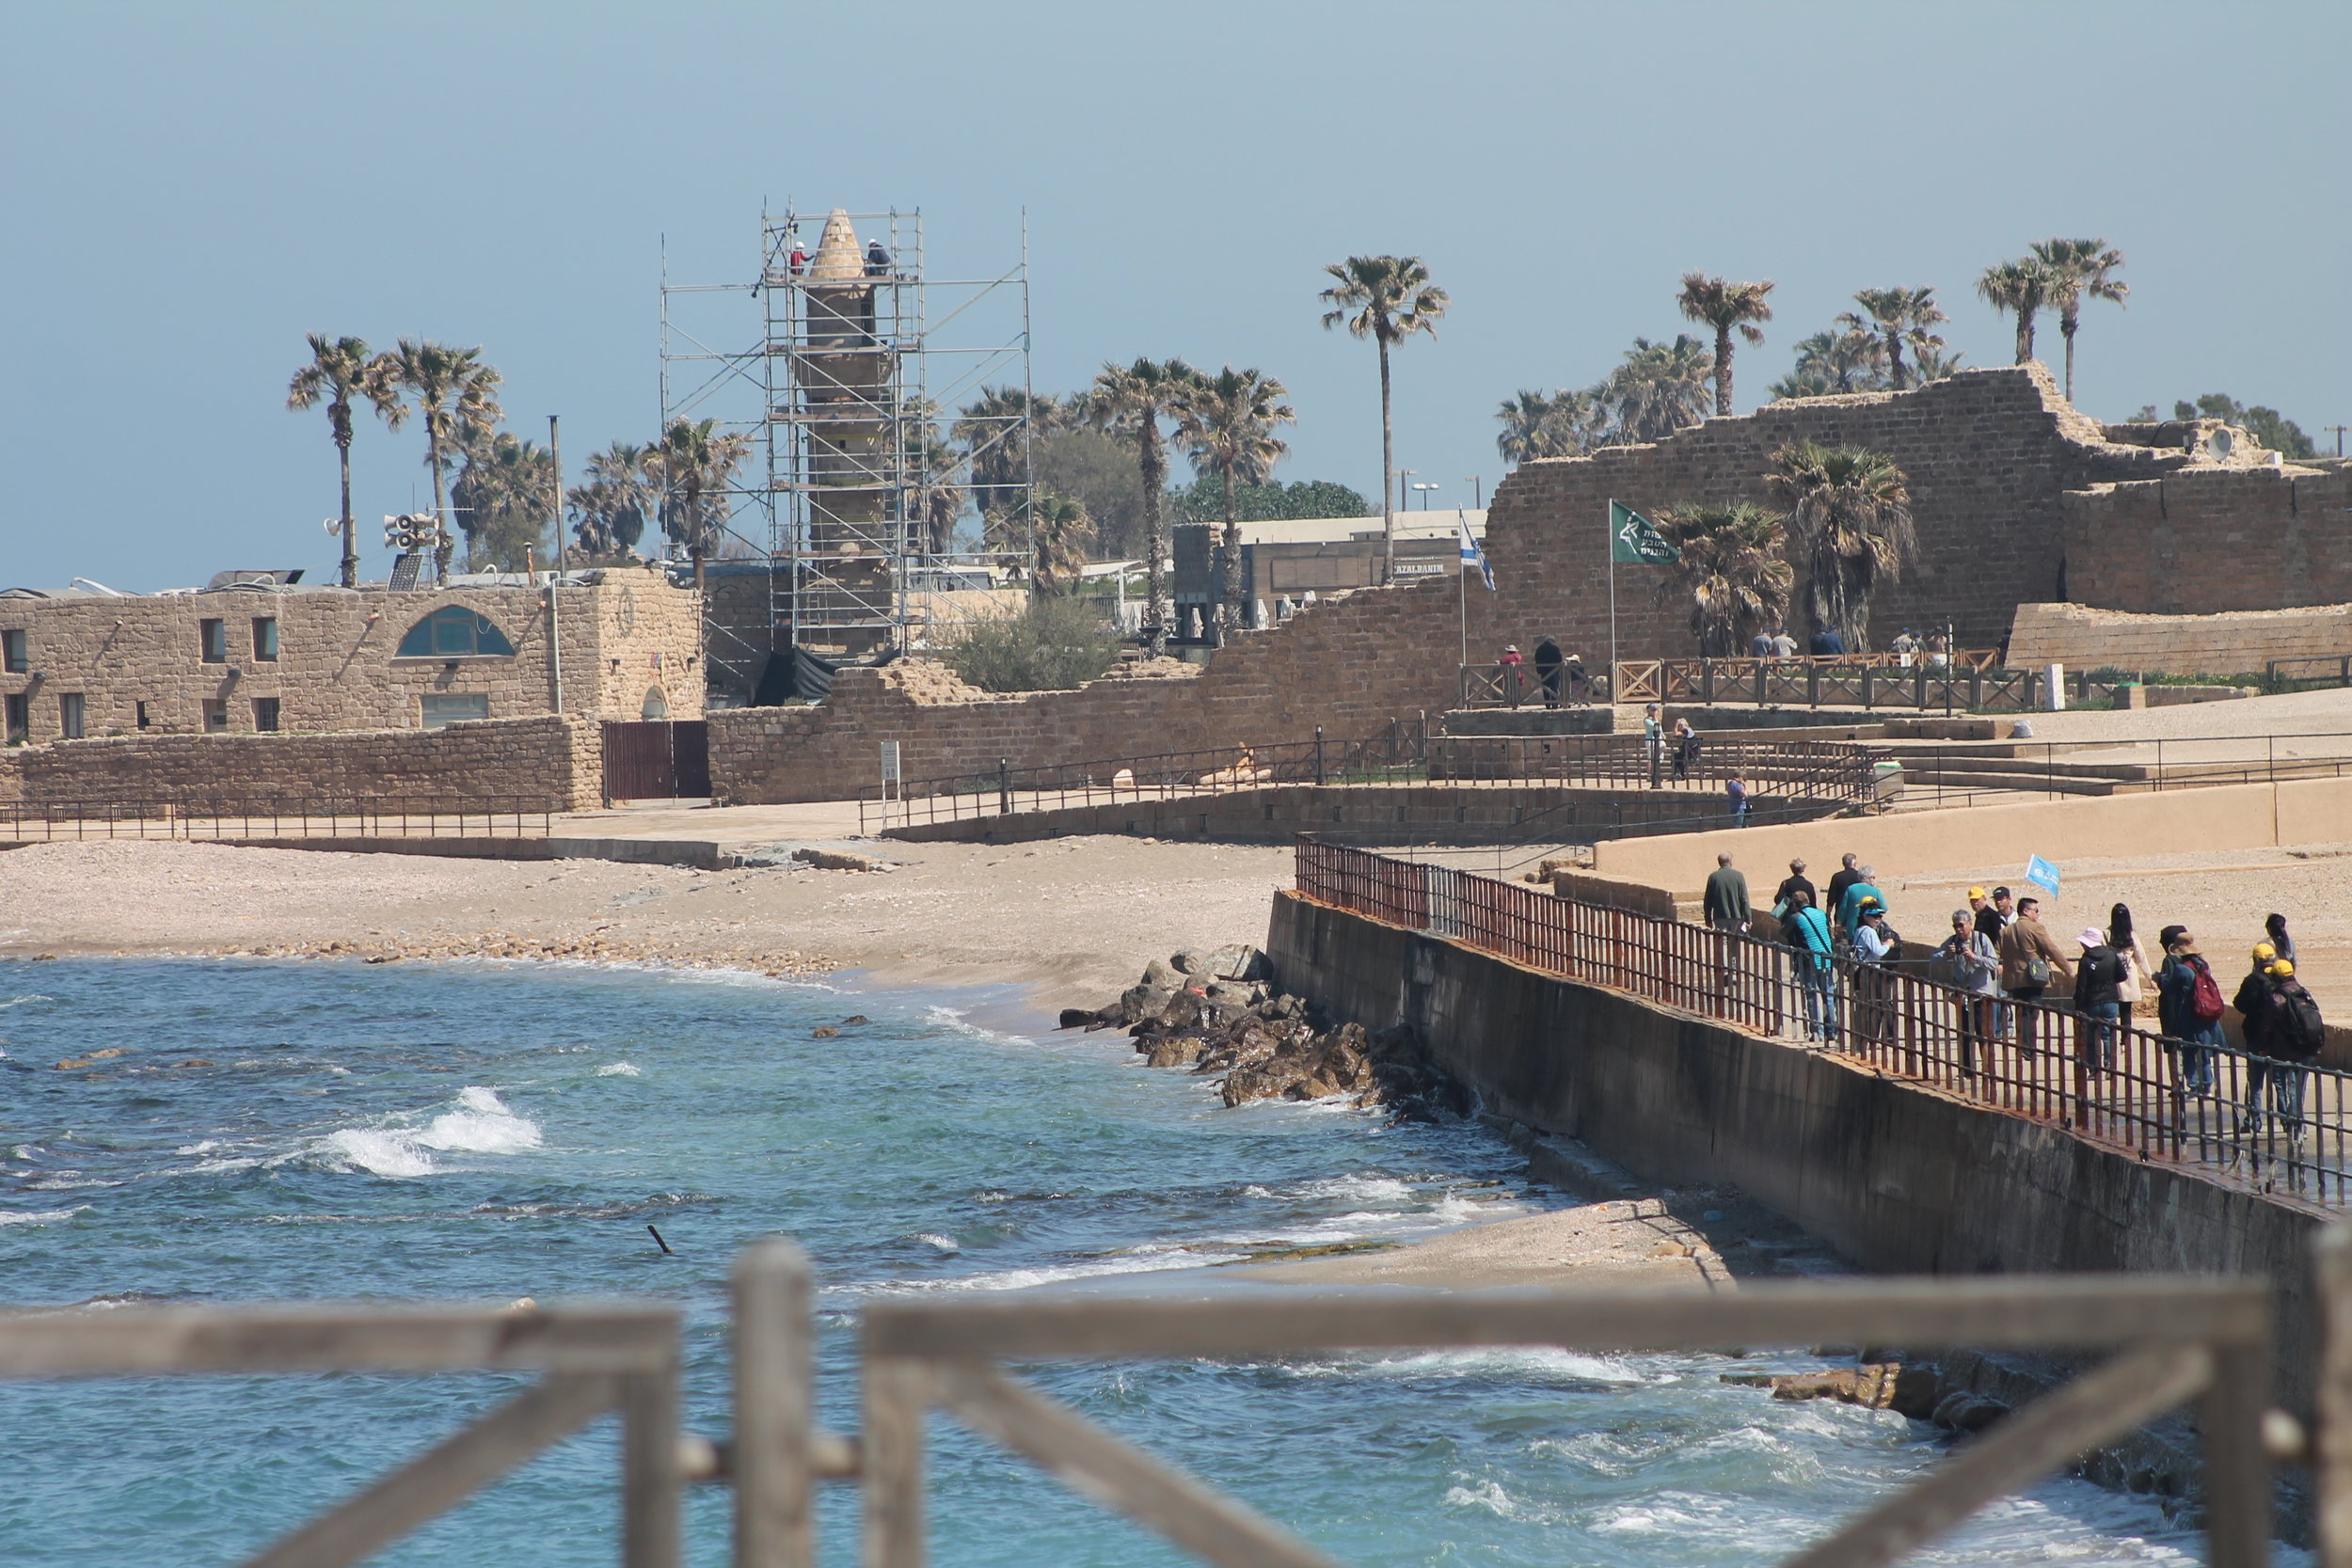 Caesarea Maritima, the ancient port built by Herod the Great as a grand place to enter the land.